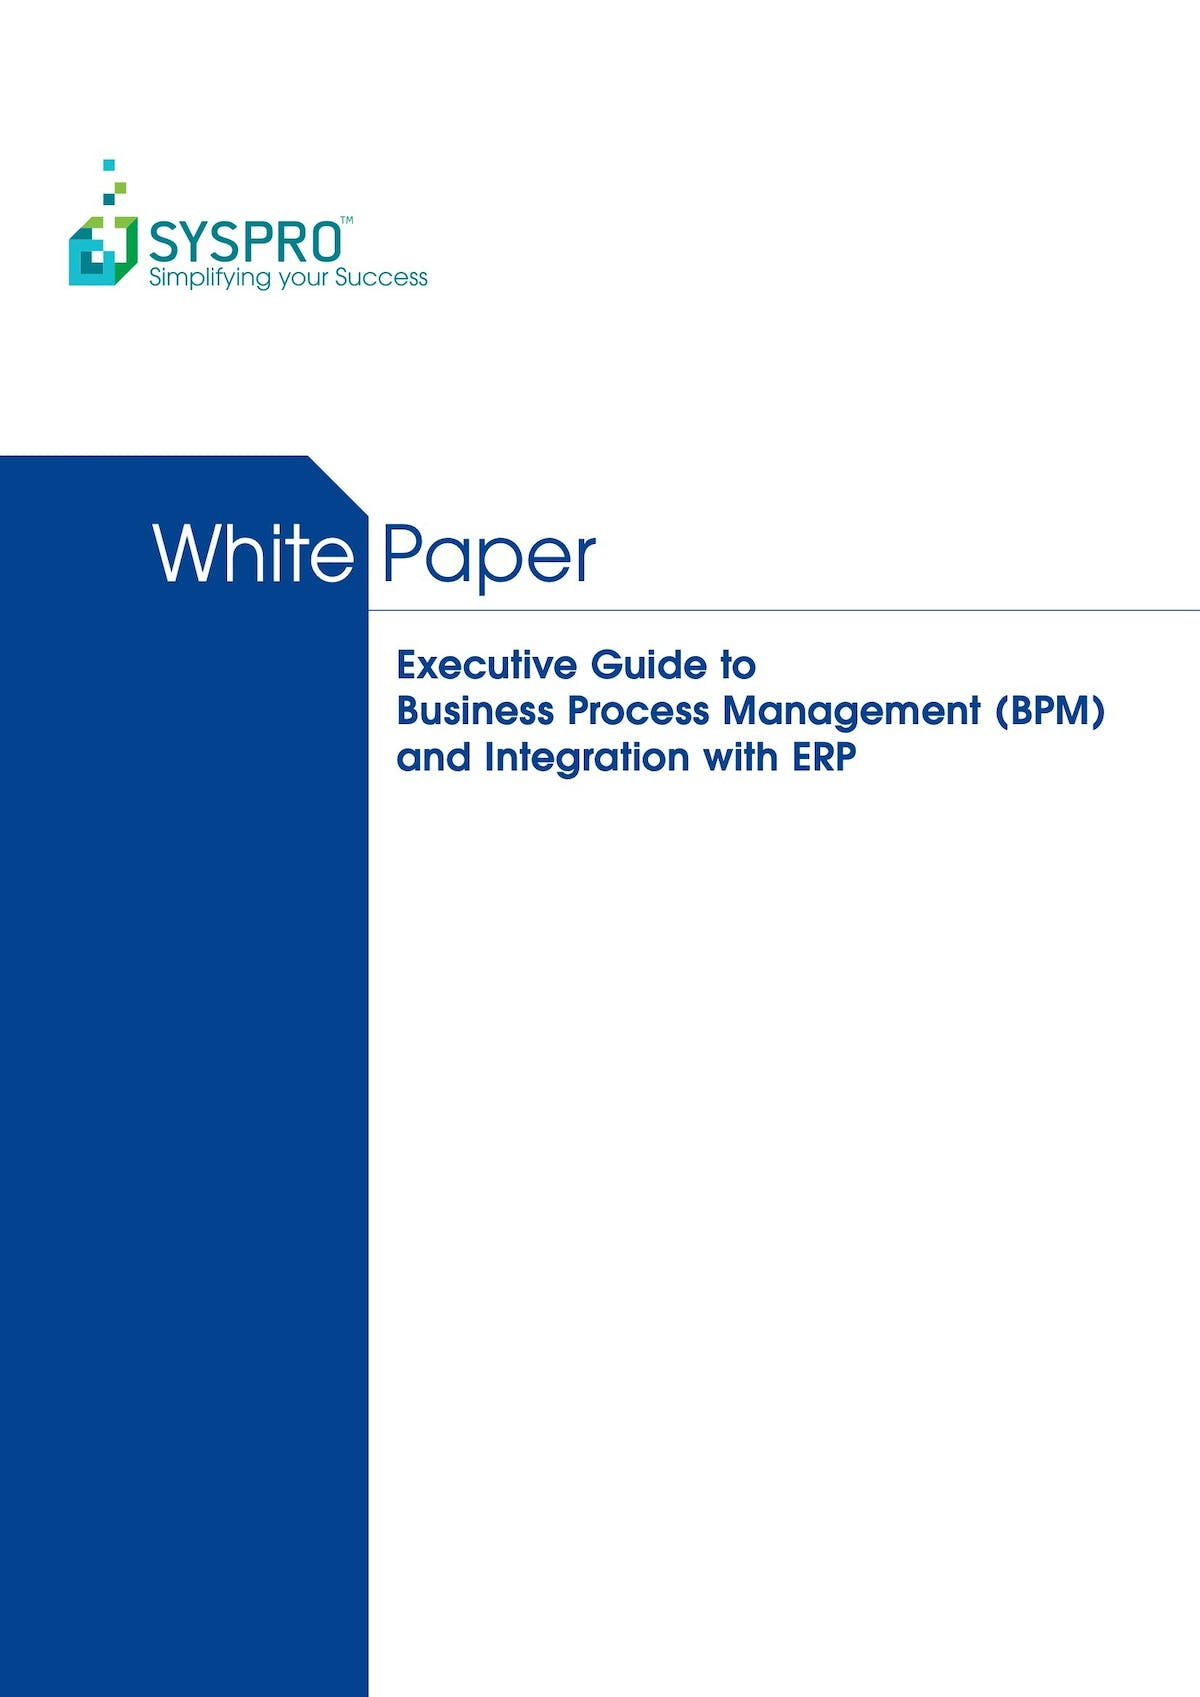 SYSPRO White Paper - Executive Guide to Business Process Management (BPM) and Integration with ERP